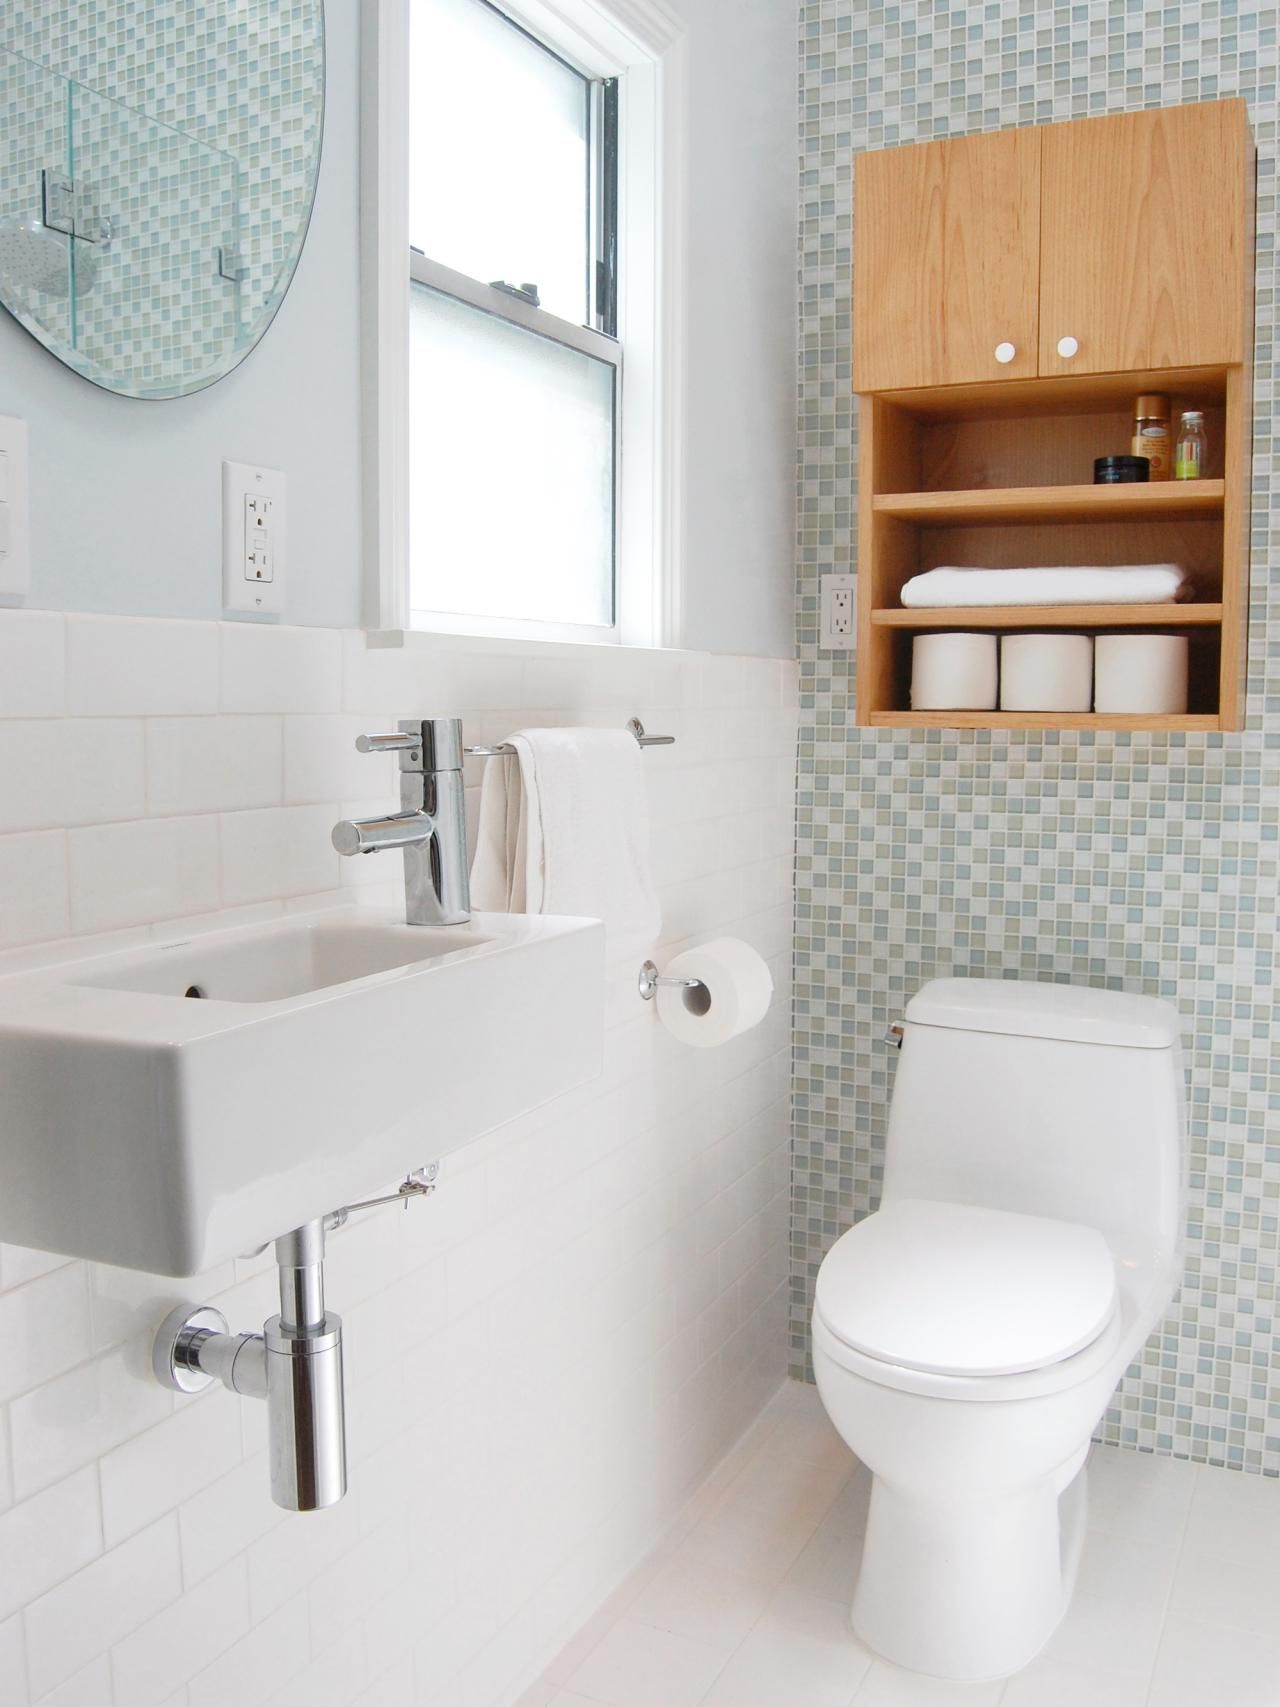 17 Clever Ideas for Small Baths | home | Pinterest | Grey mosaic ...